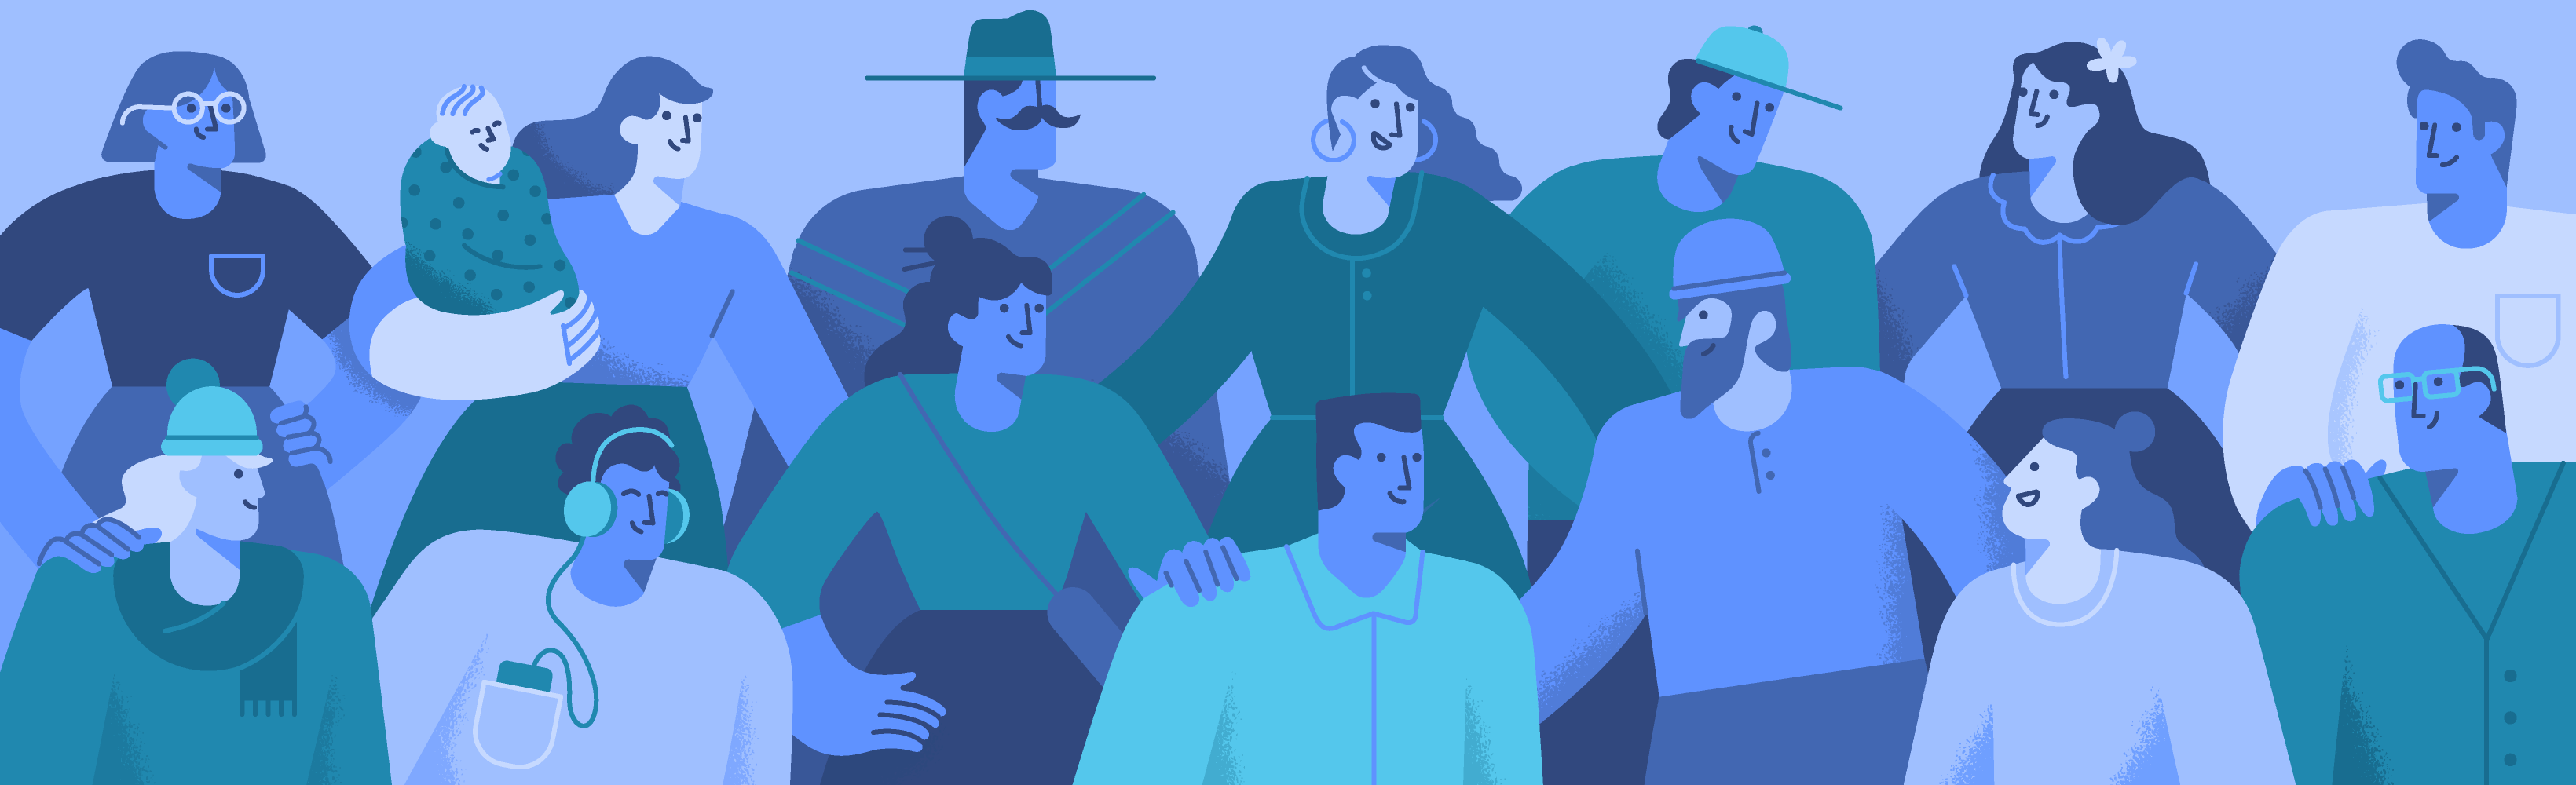 illustration of crowd of people supporting each other